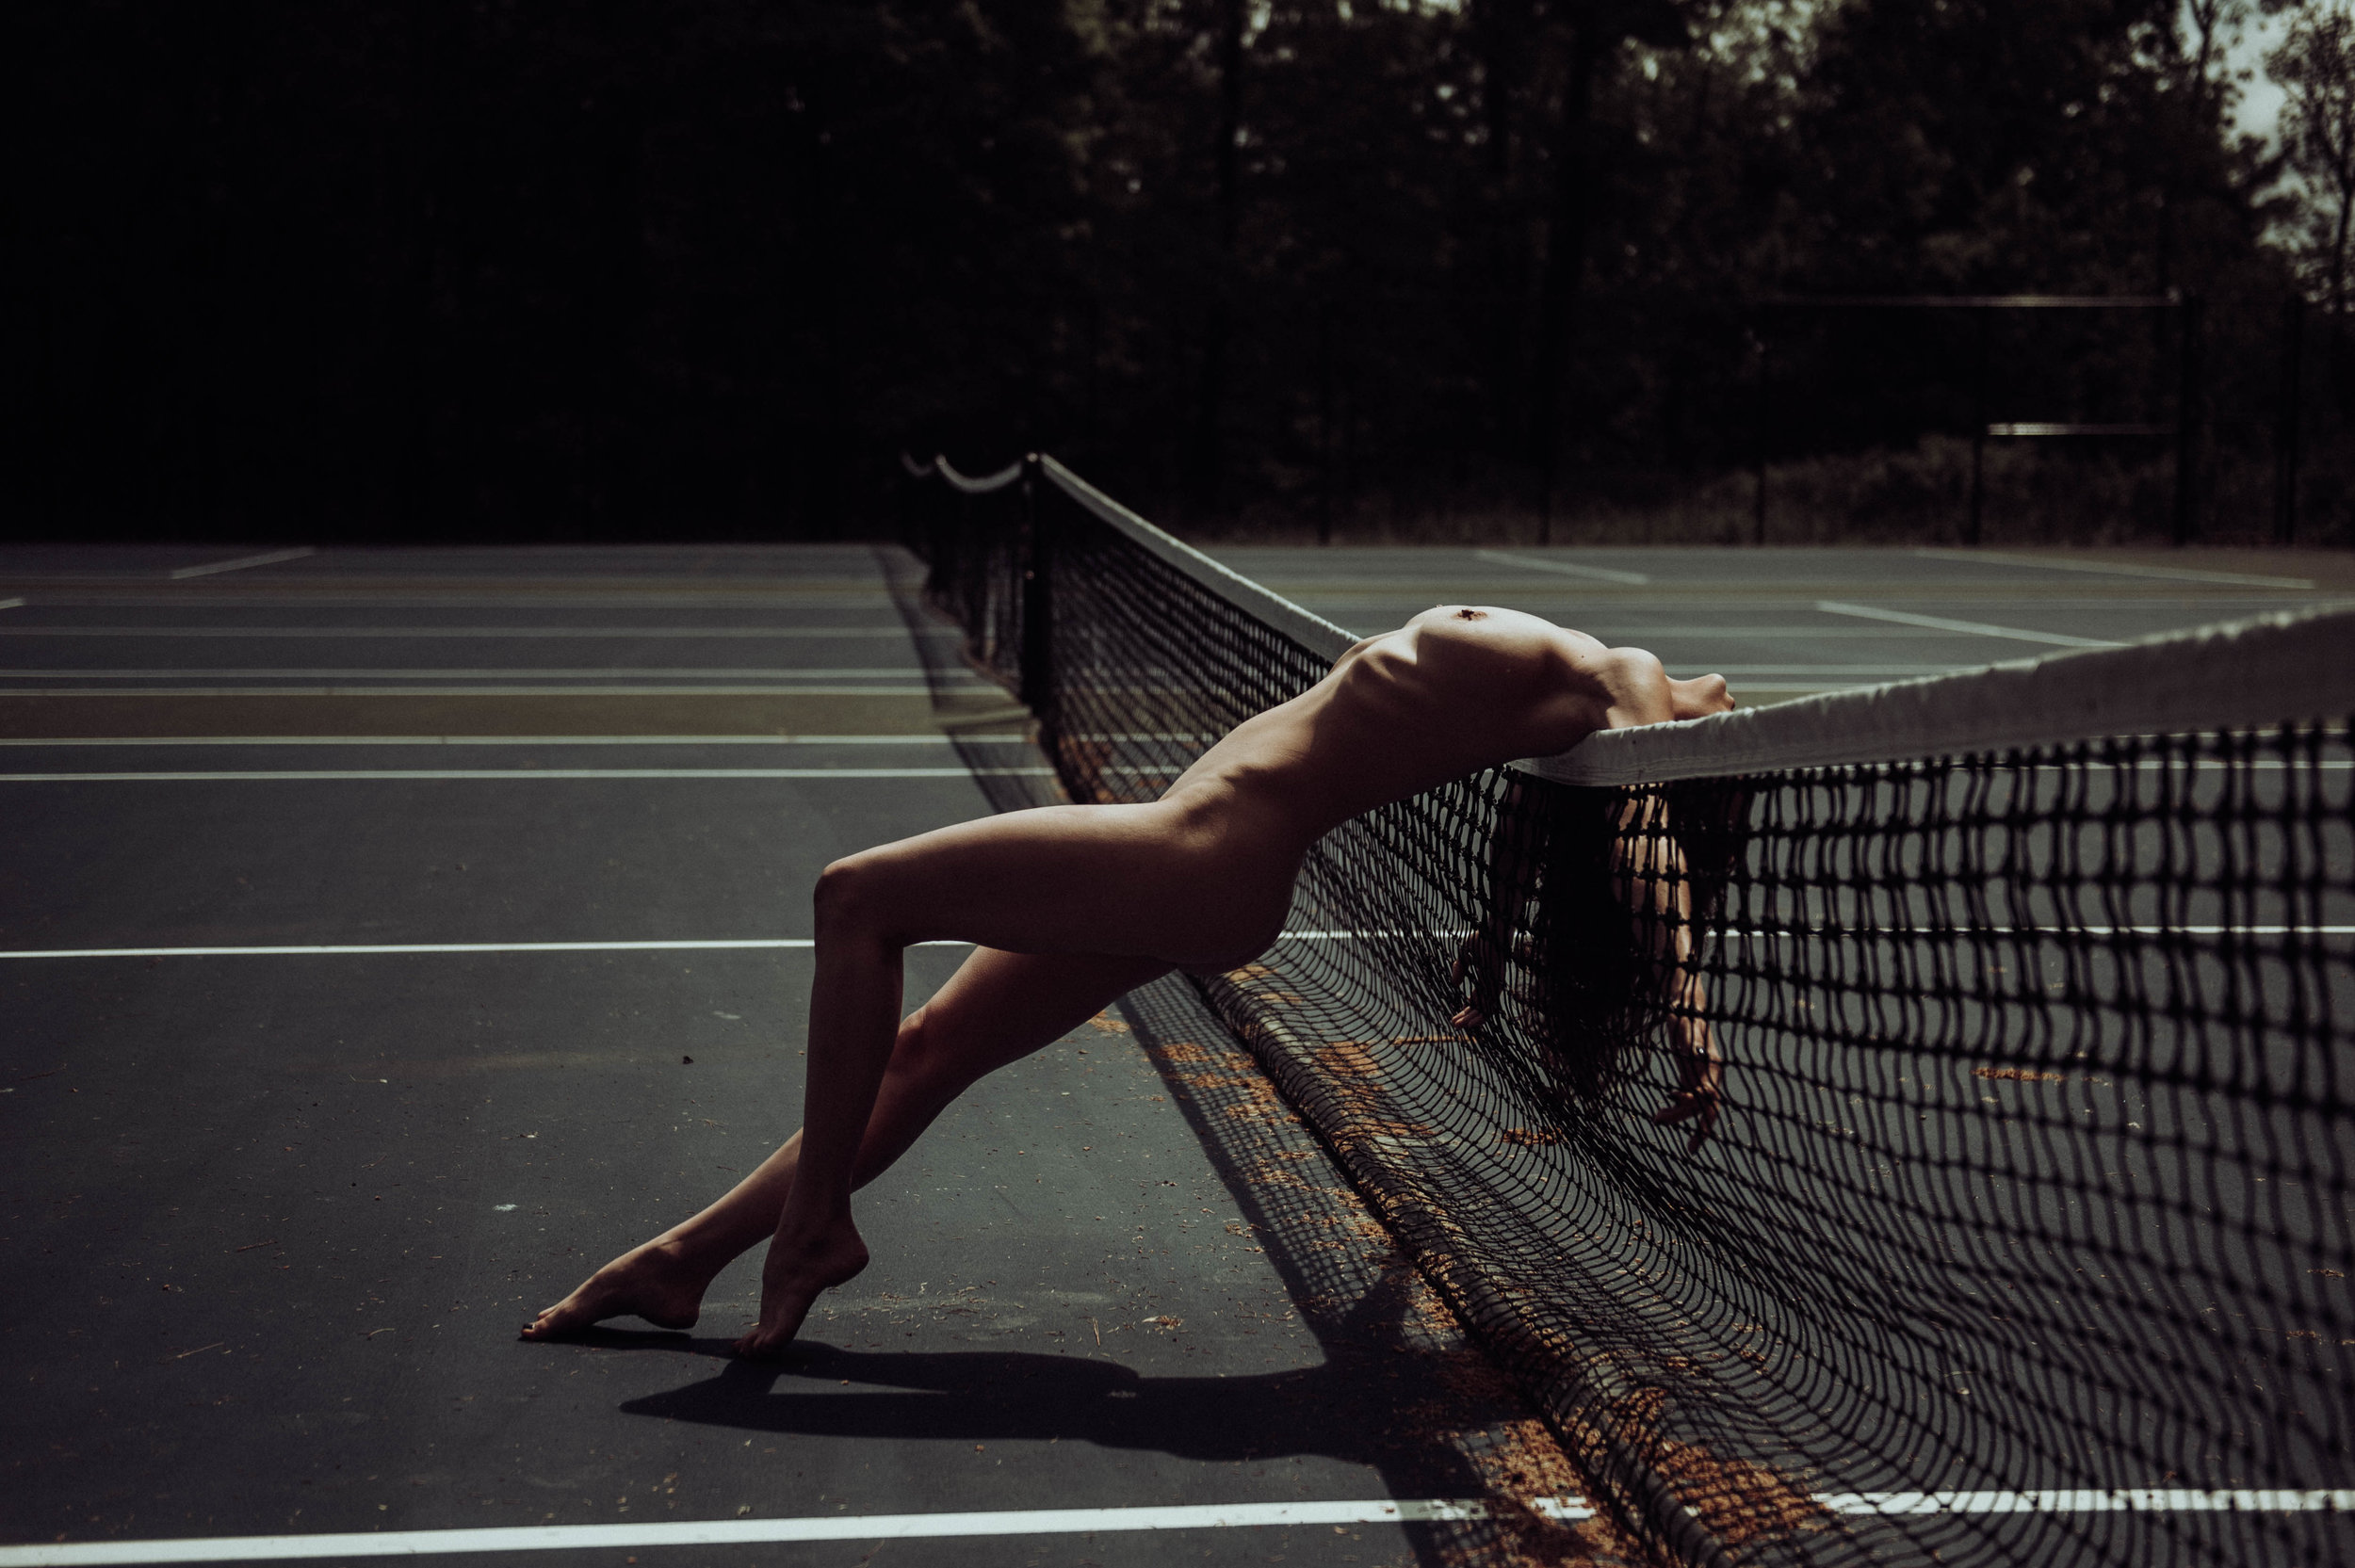 Erotic nude outdoors photography Tennis Court Taylor Oakes Boudoir photography New York Studio